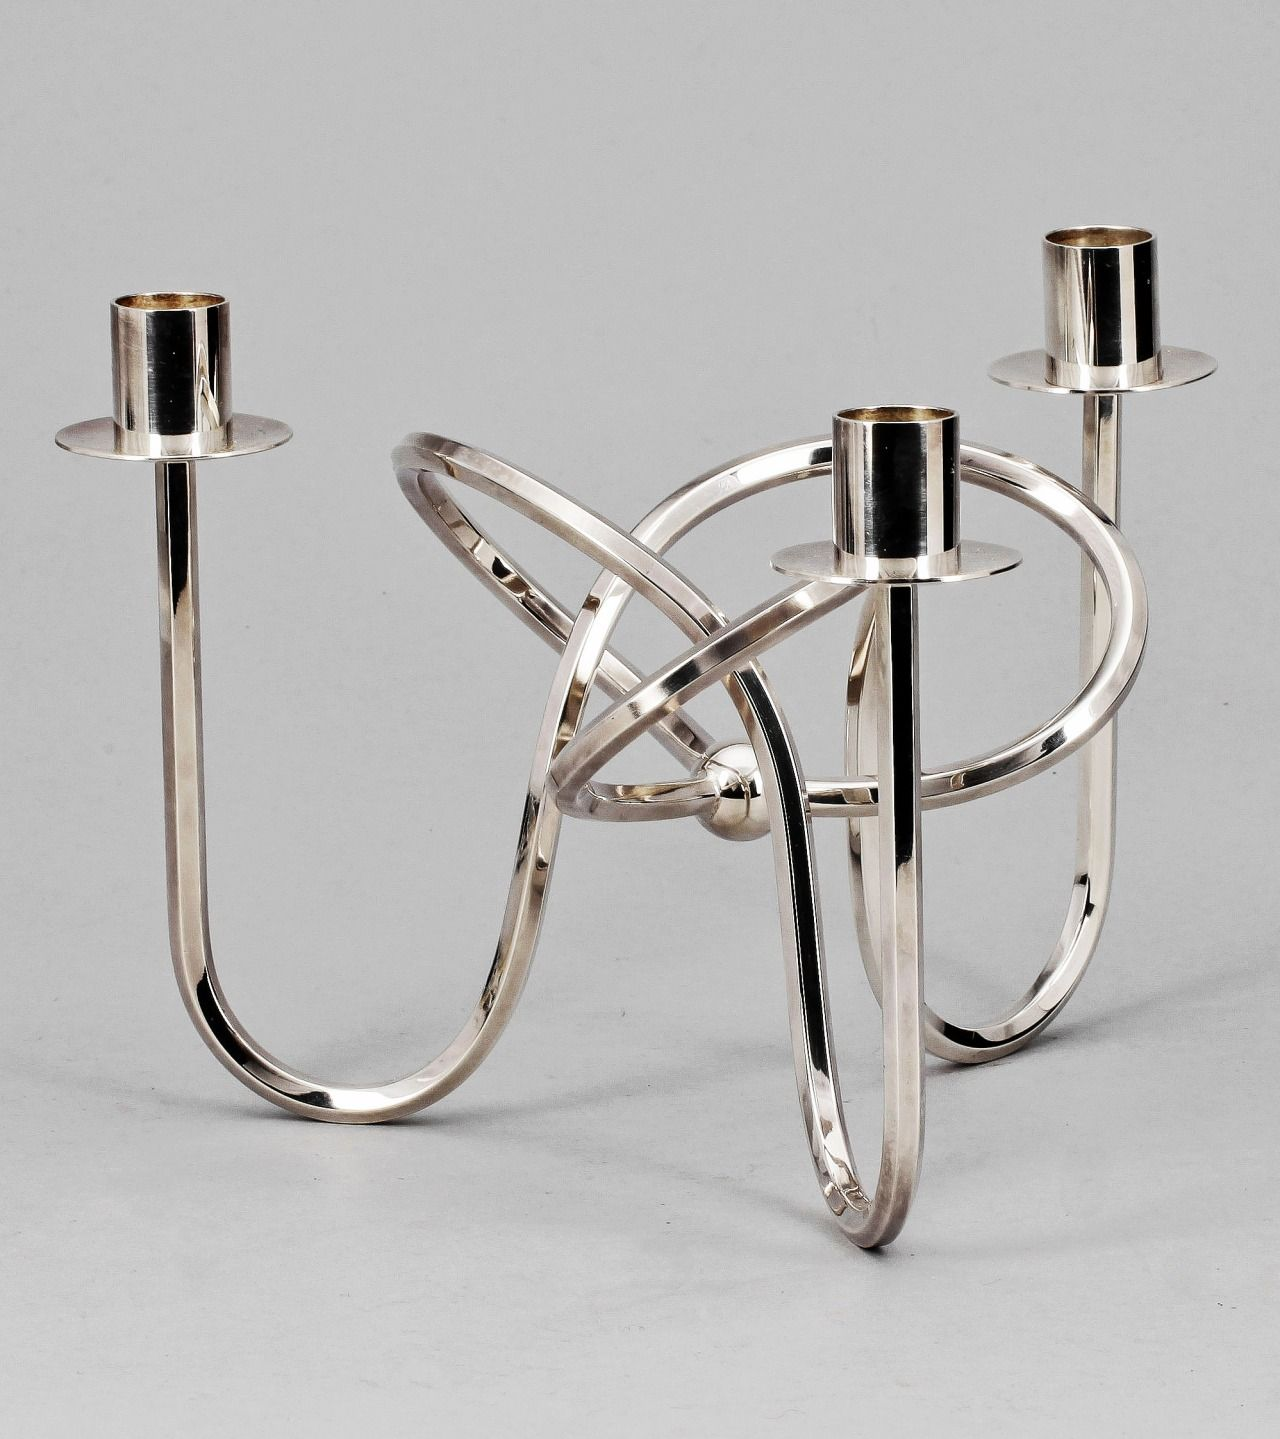 JOSEF FRANK, Vänskapsknuten candel holder, 1938. Designed for and manufactured by Firma Svenskt Tenn Ab, Sweden. Silver plated brass.